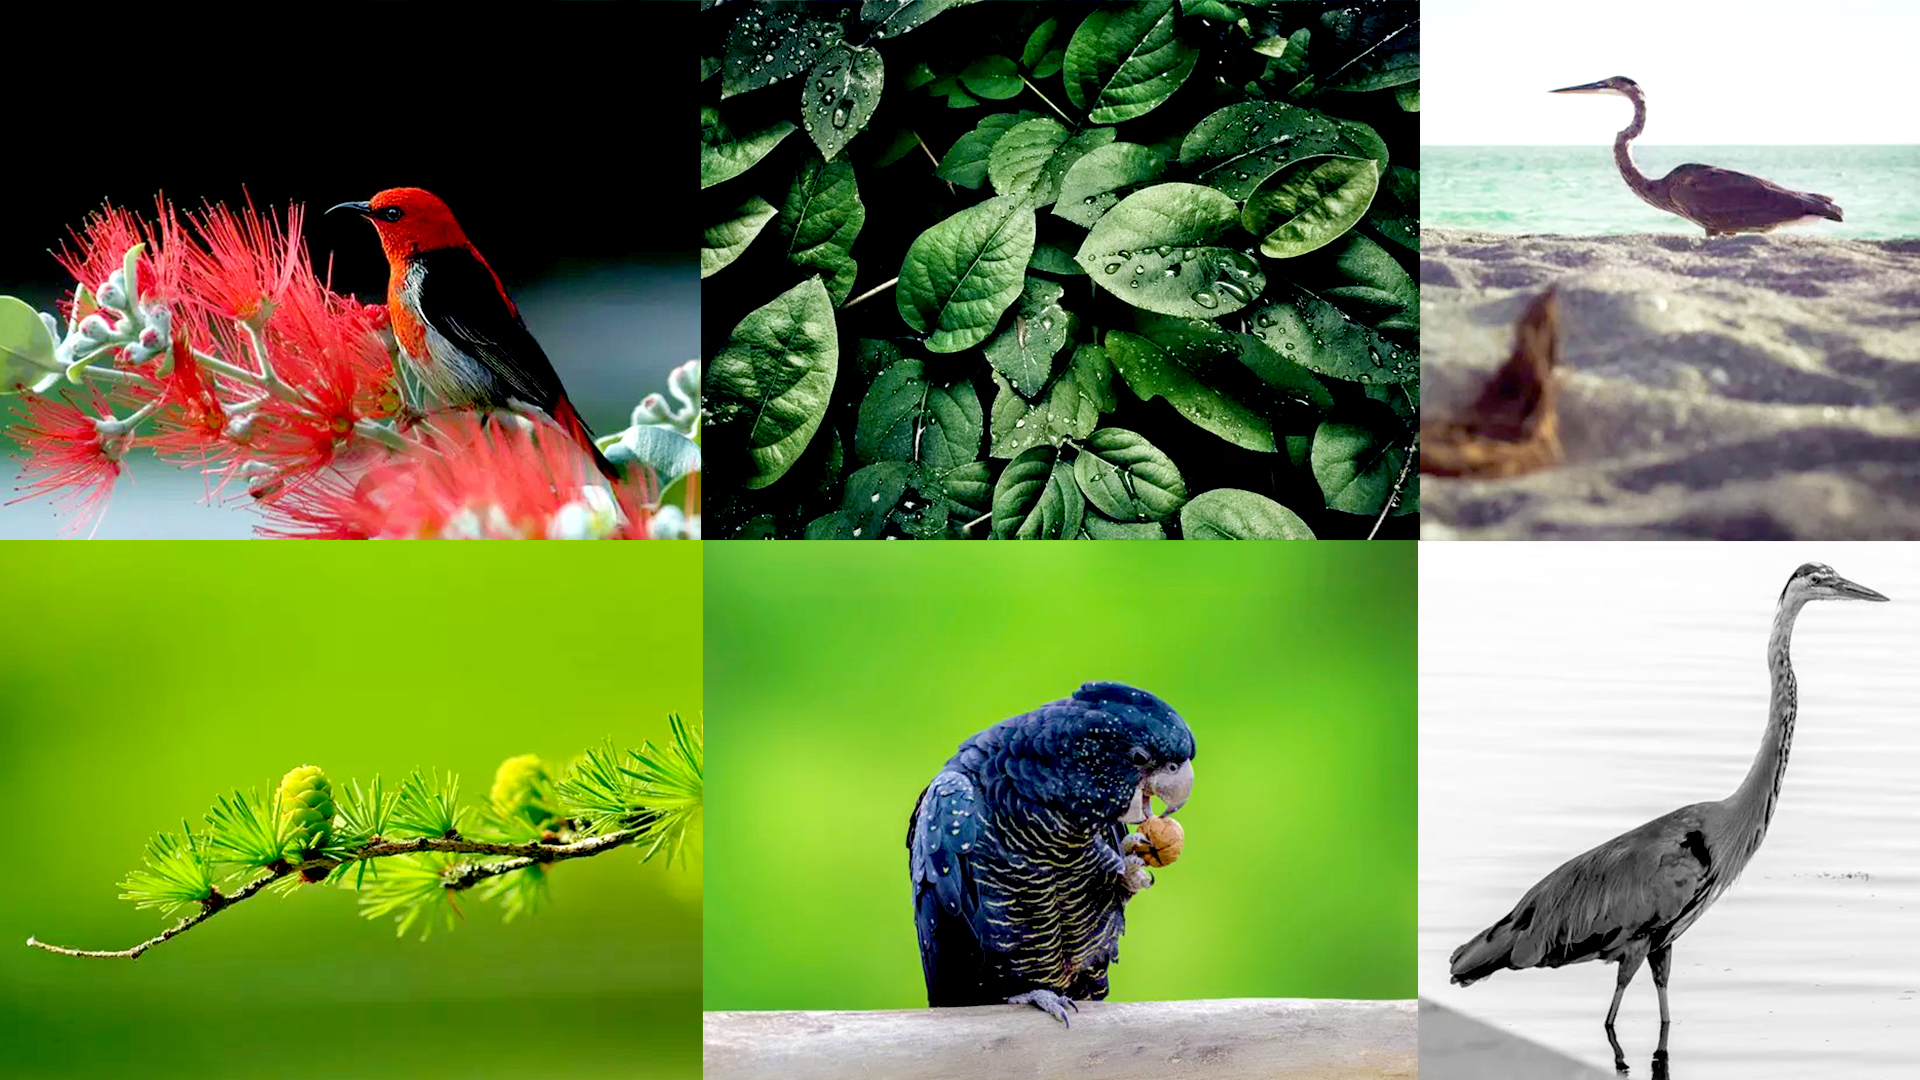 How To Improve Your Nature Photography Skills: Here Are 12 Tips